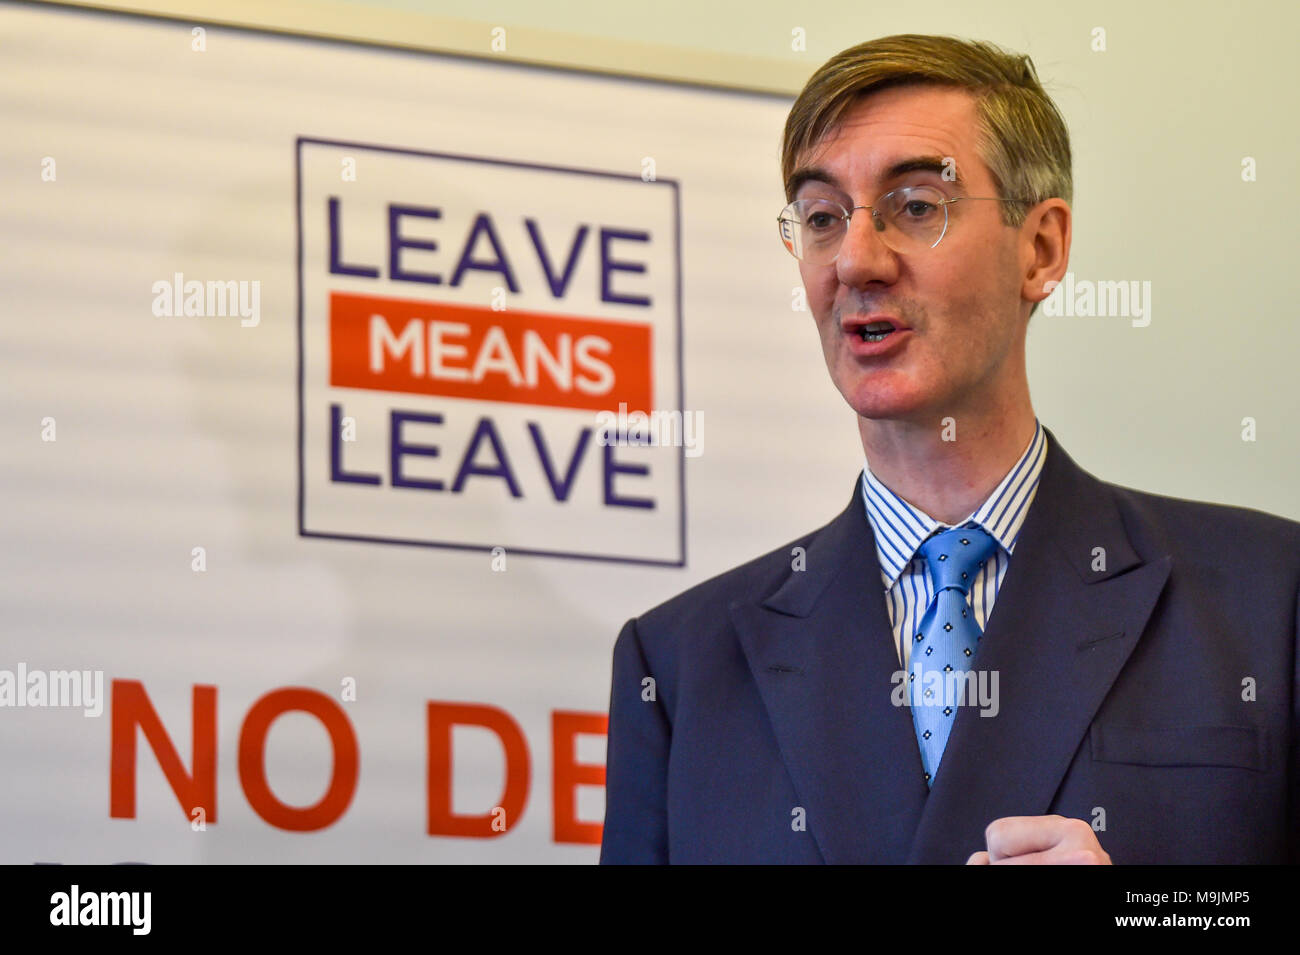 """London, United Kingdom. 27 March 2018. Jacob Rees-Mogg gives a major Brexit speech at a Leave Means Leave event in central London. Tory MP Rees-Mogg slammed Brussels for its """"bullying"""" approach and said that they have entered negotiations """"in the spirit of they know best and we must do as we are told"""".  Credit: Peter Manning/Alamy Live News - Stock Image"""